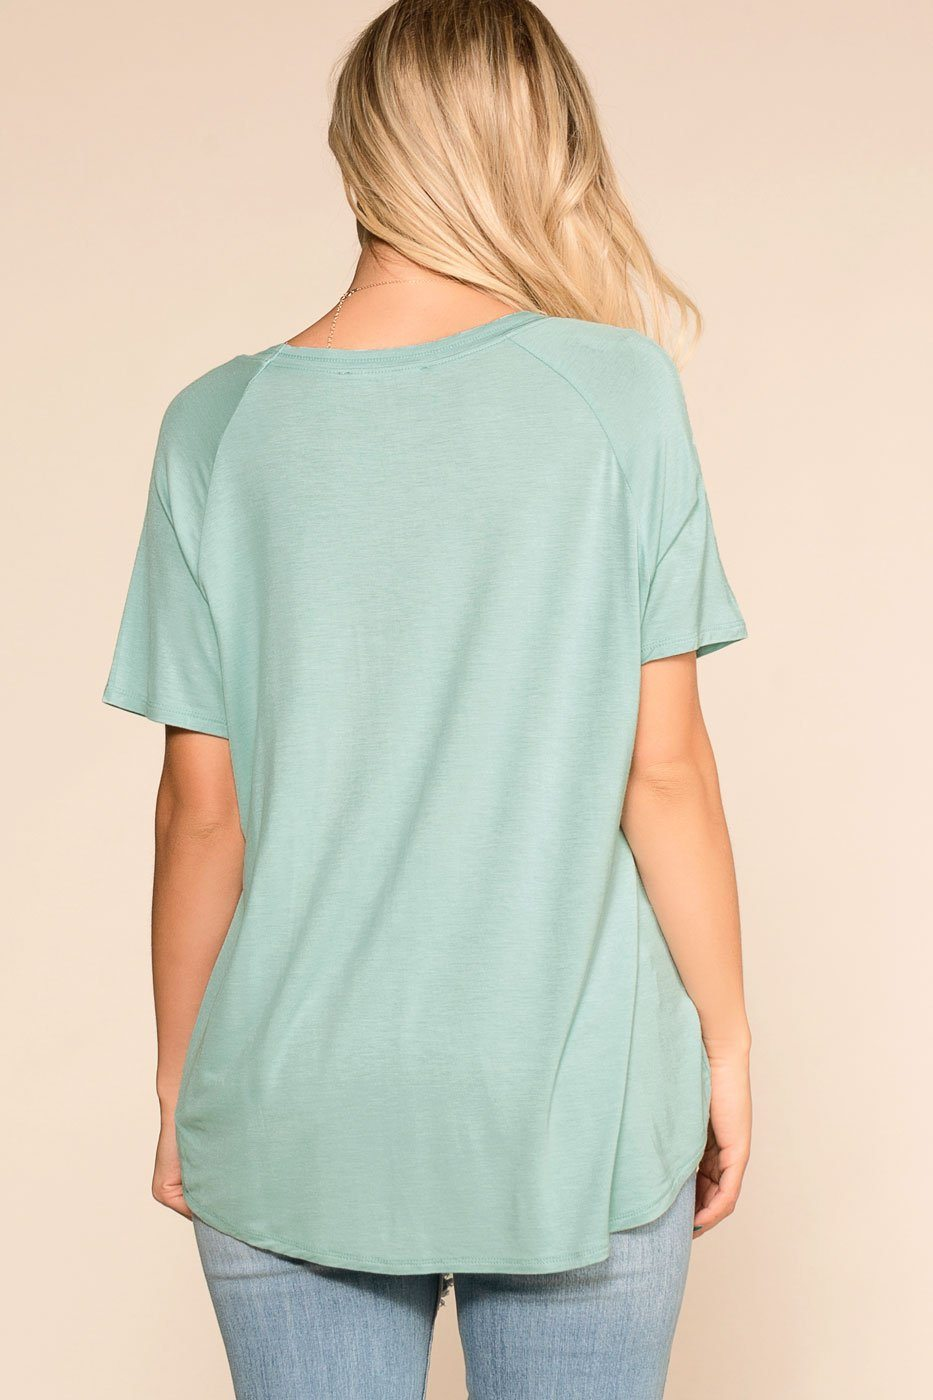 Sure Bet Mint V-Neck Tee | Hyfve